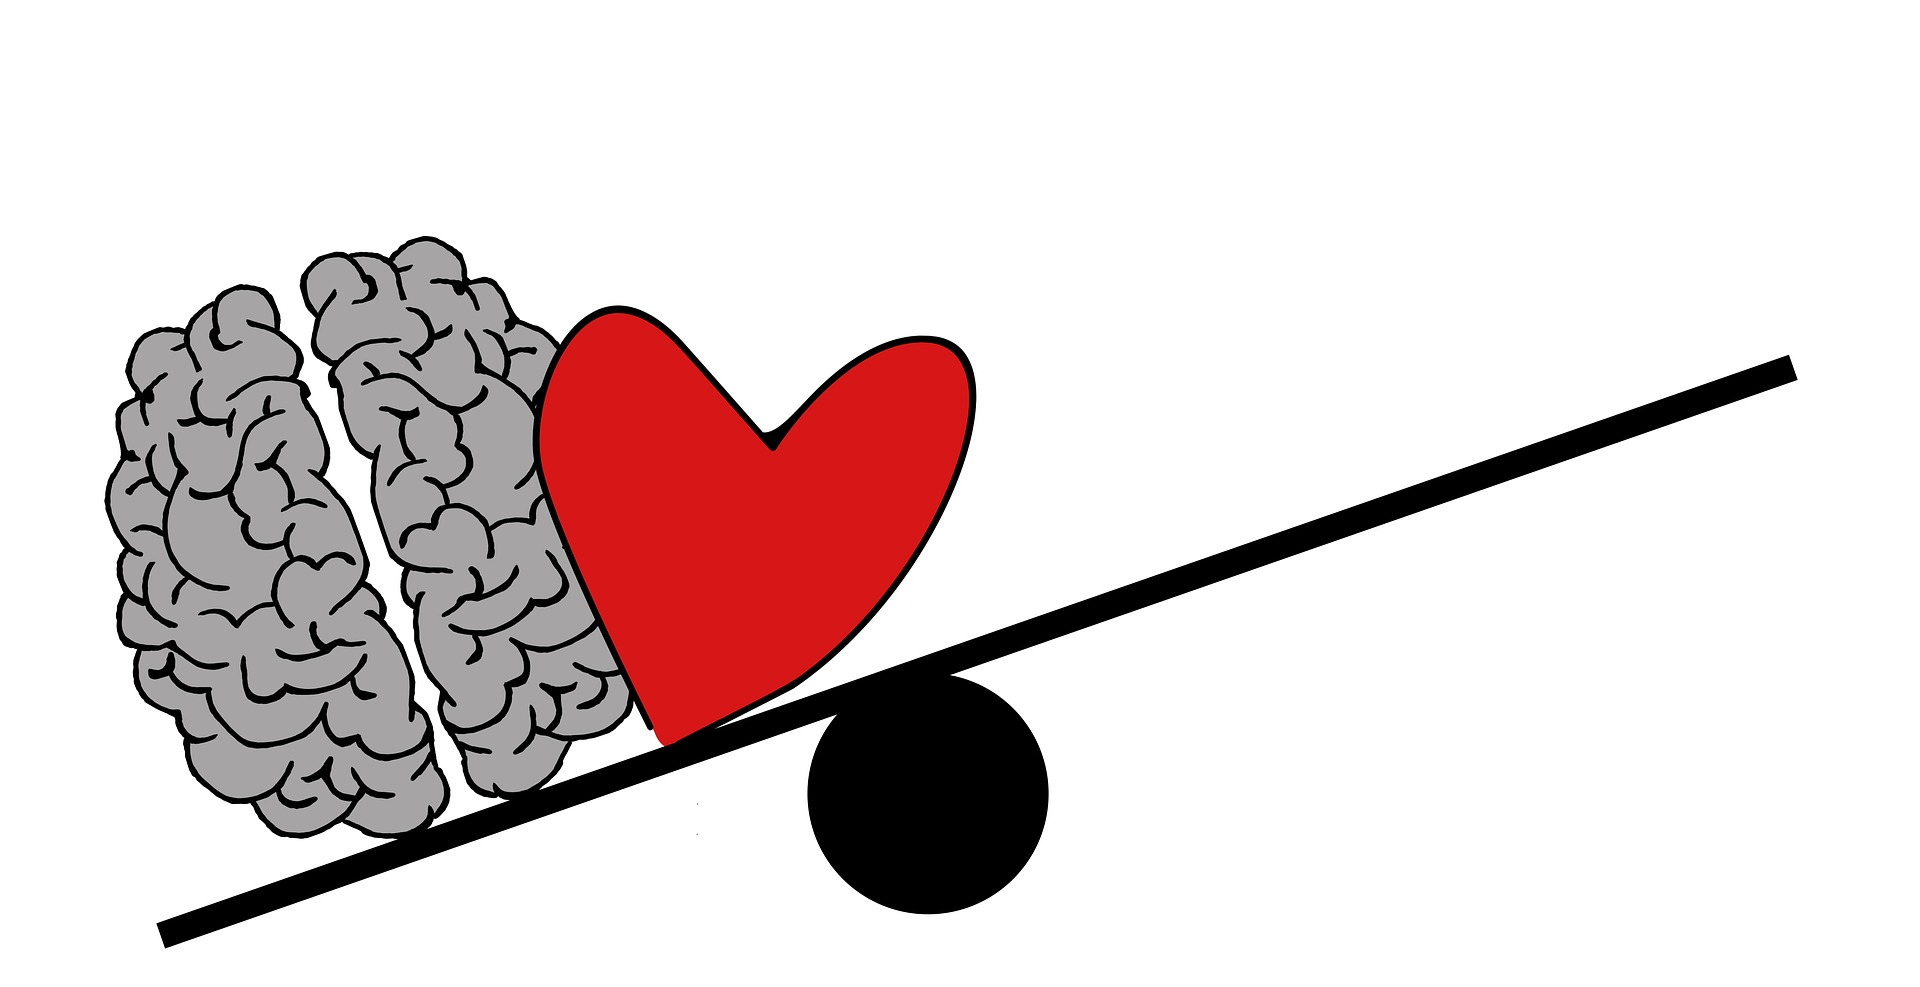 Brains clipart counsellor Marriage and emotions Counselling this